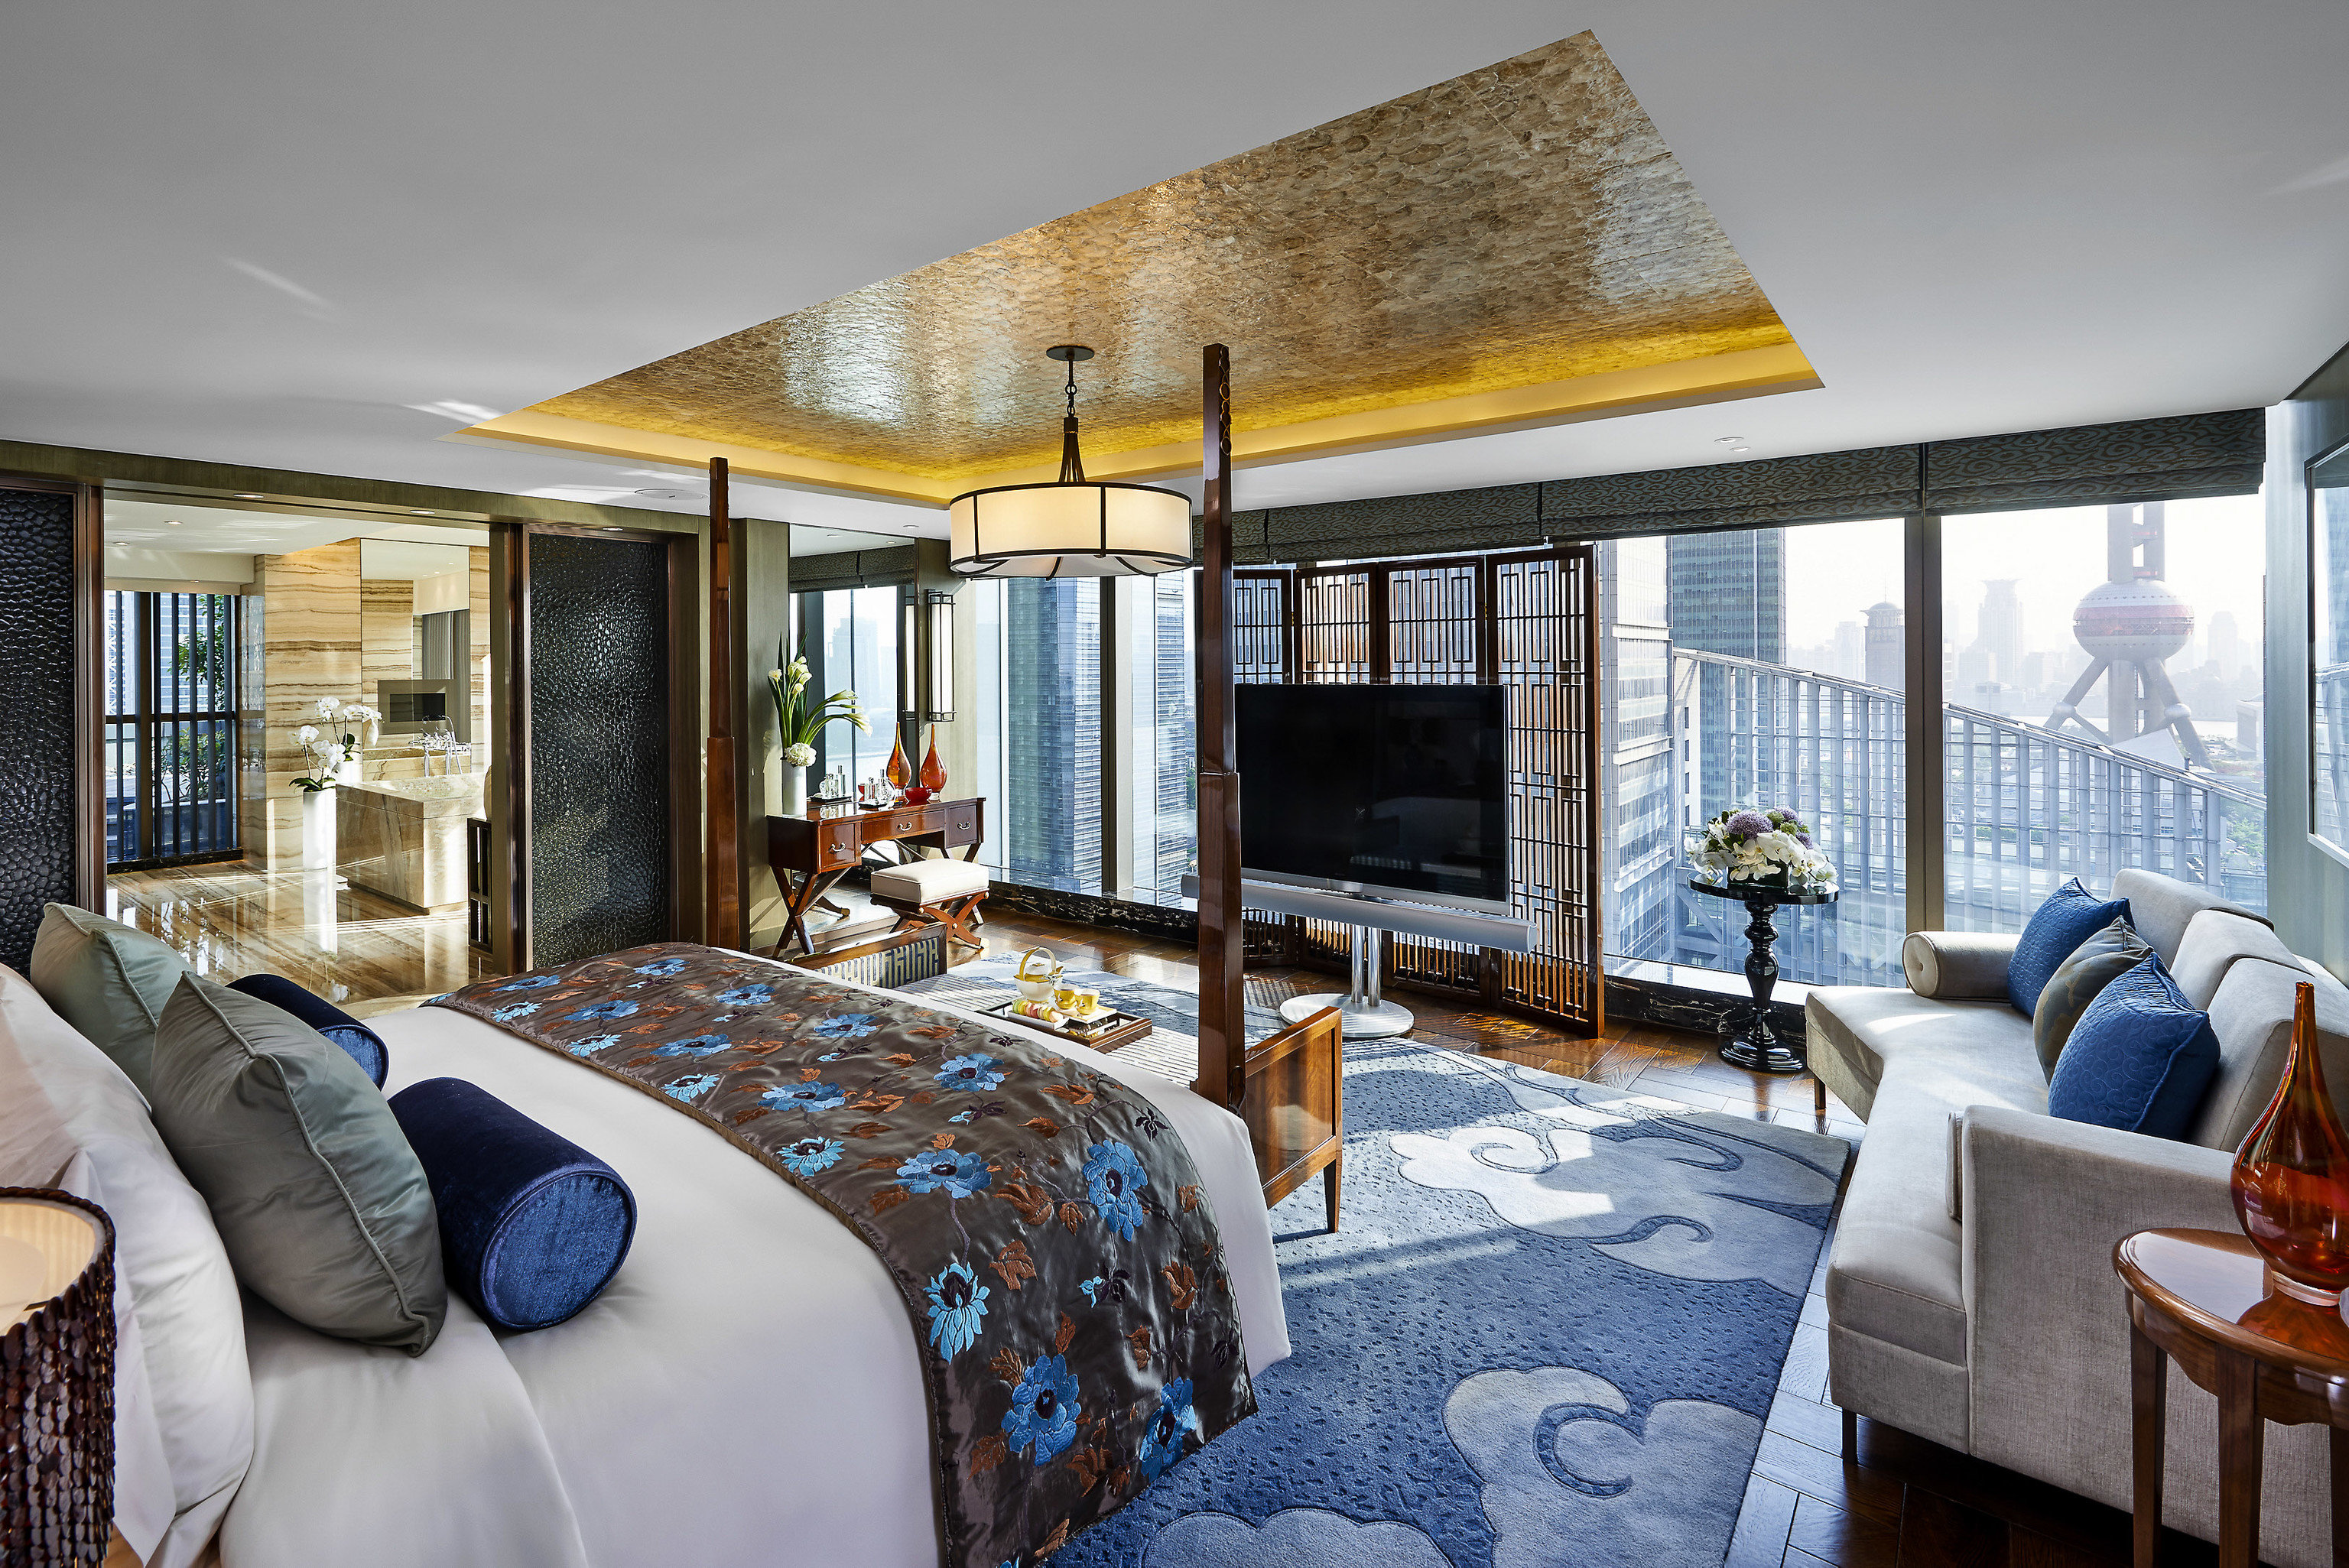 Boutique Hotels Luxury Travel indoor room sofa Living window ceiling floor furniture living room interior design real estate home decorated estate house Suite penthouse apartment area Bedroom